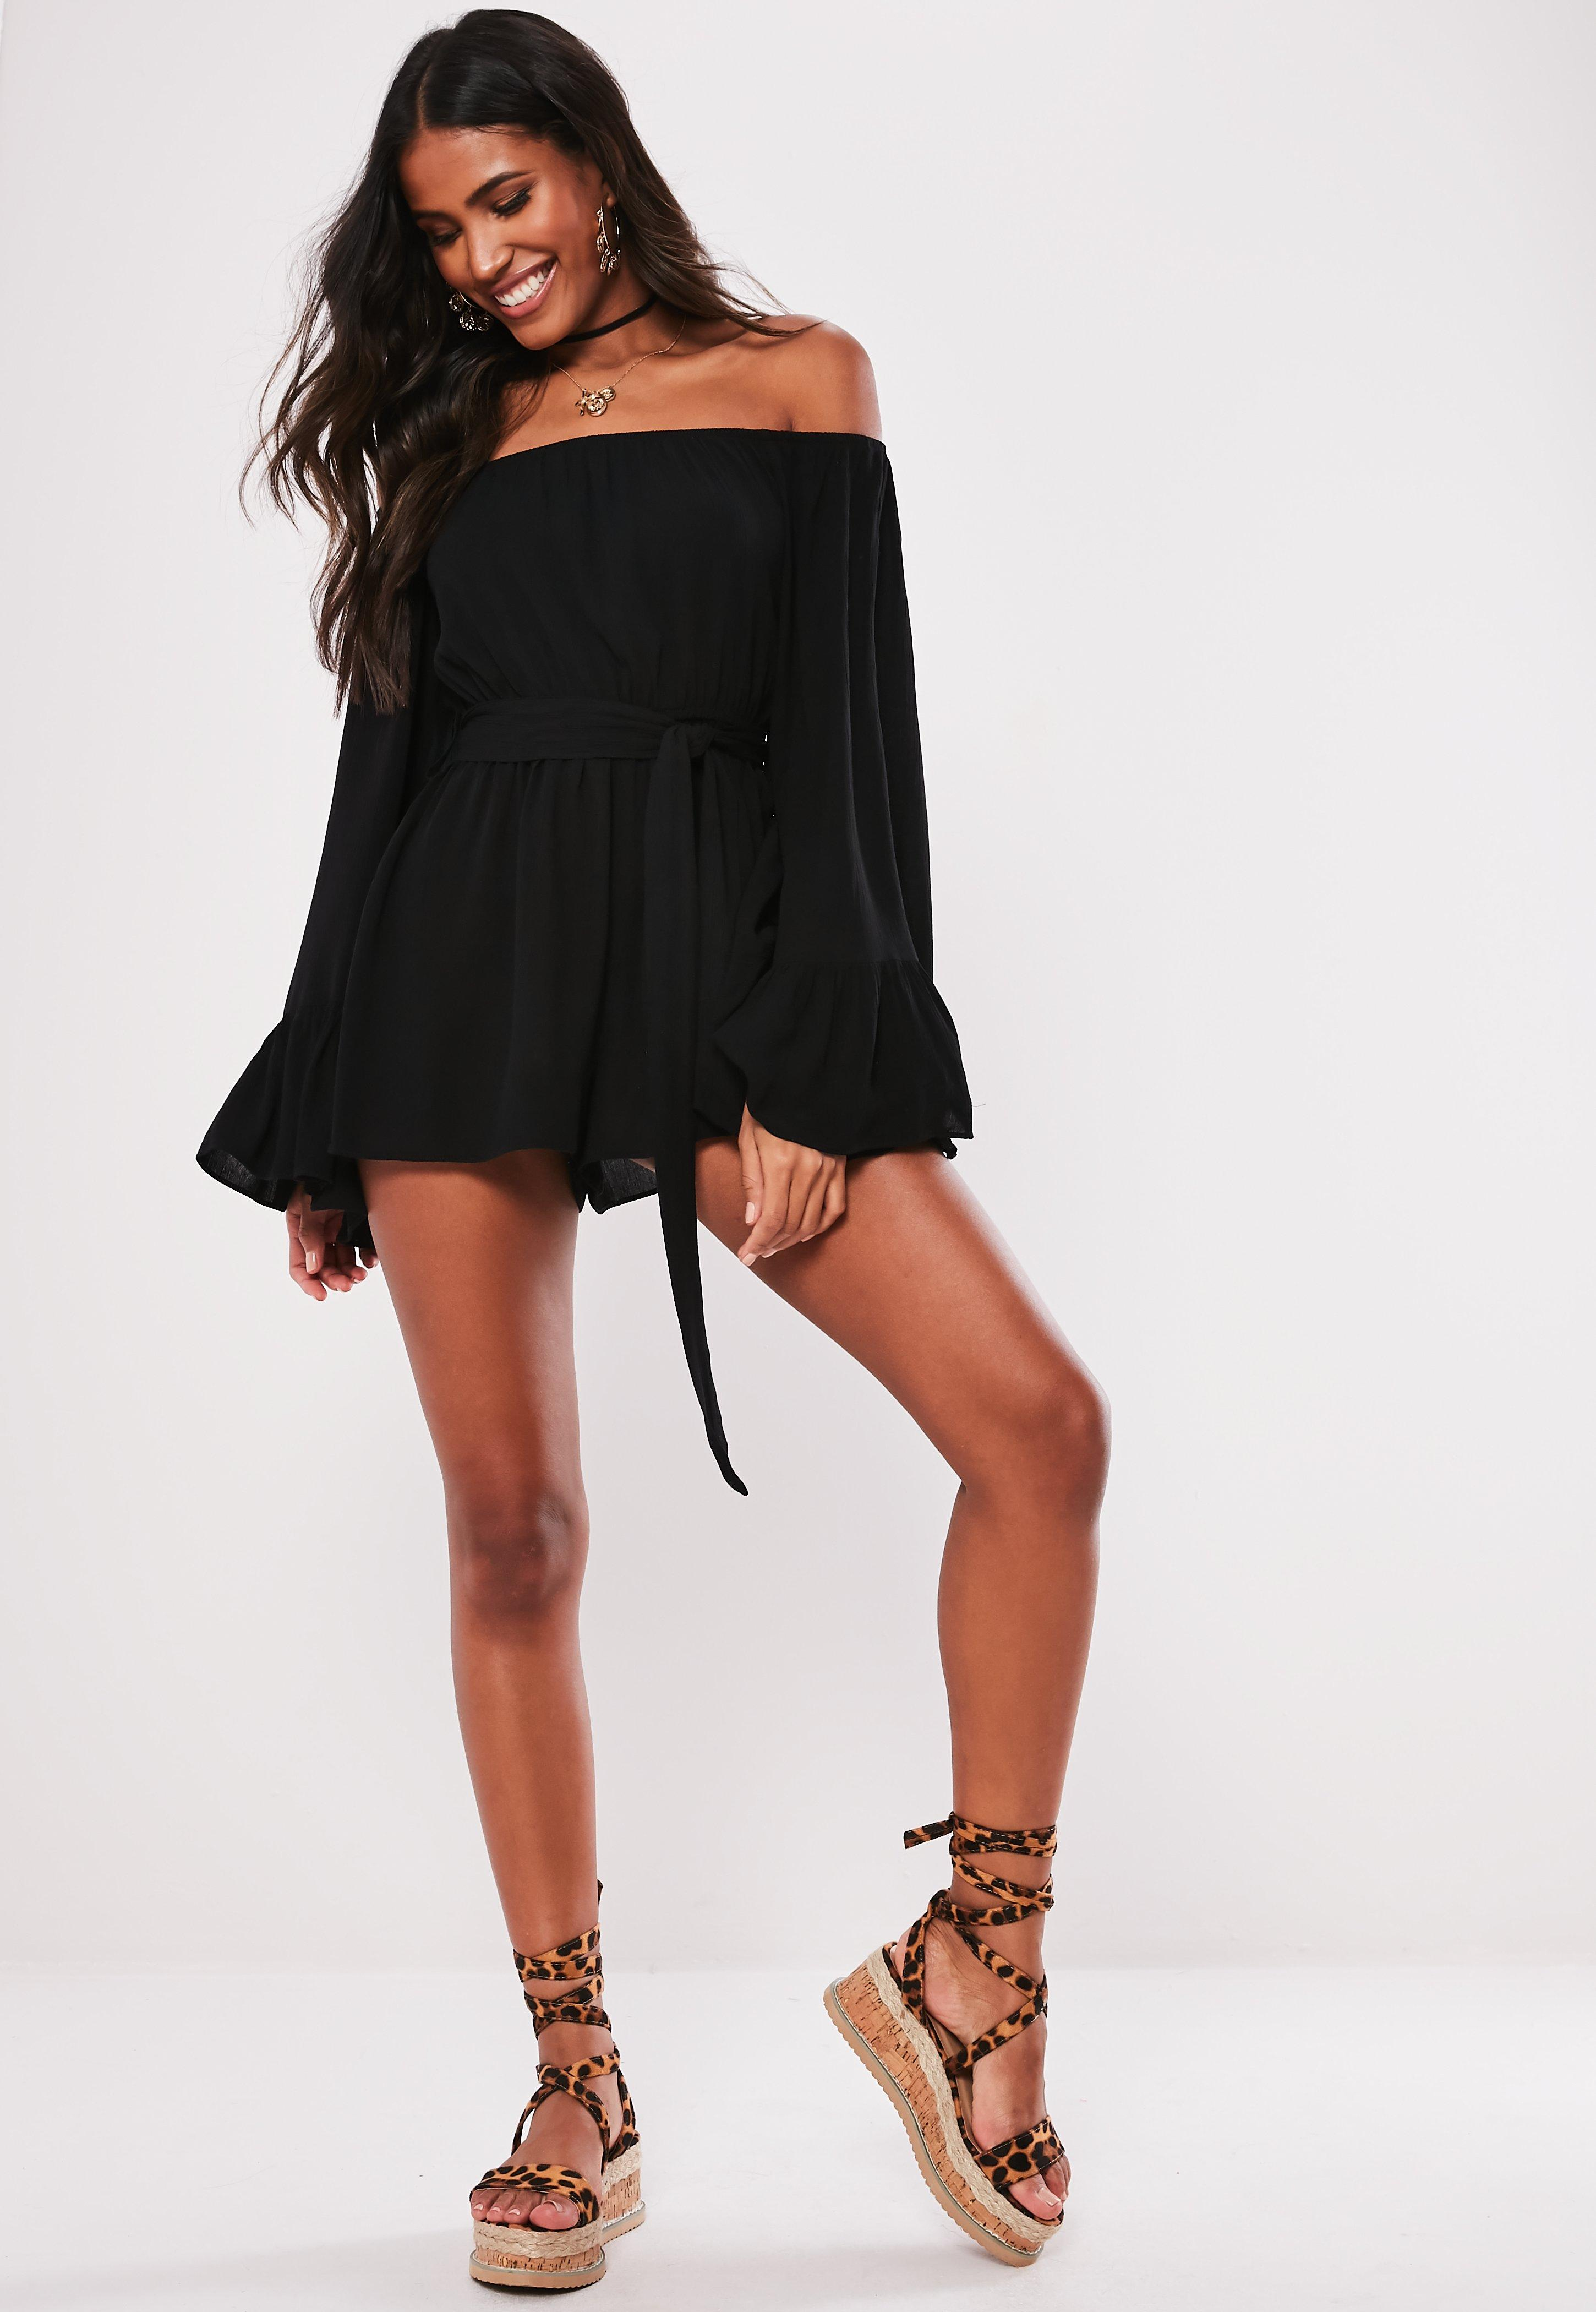 2665a4f43f27 Playsuits | Women's White & Black Playsuits | Missguided